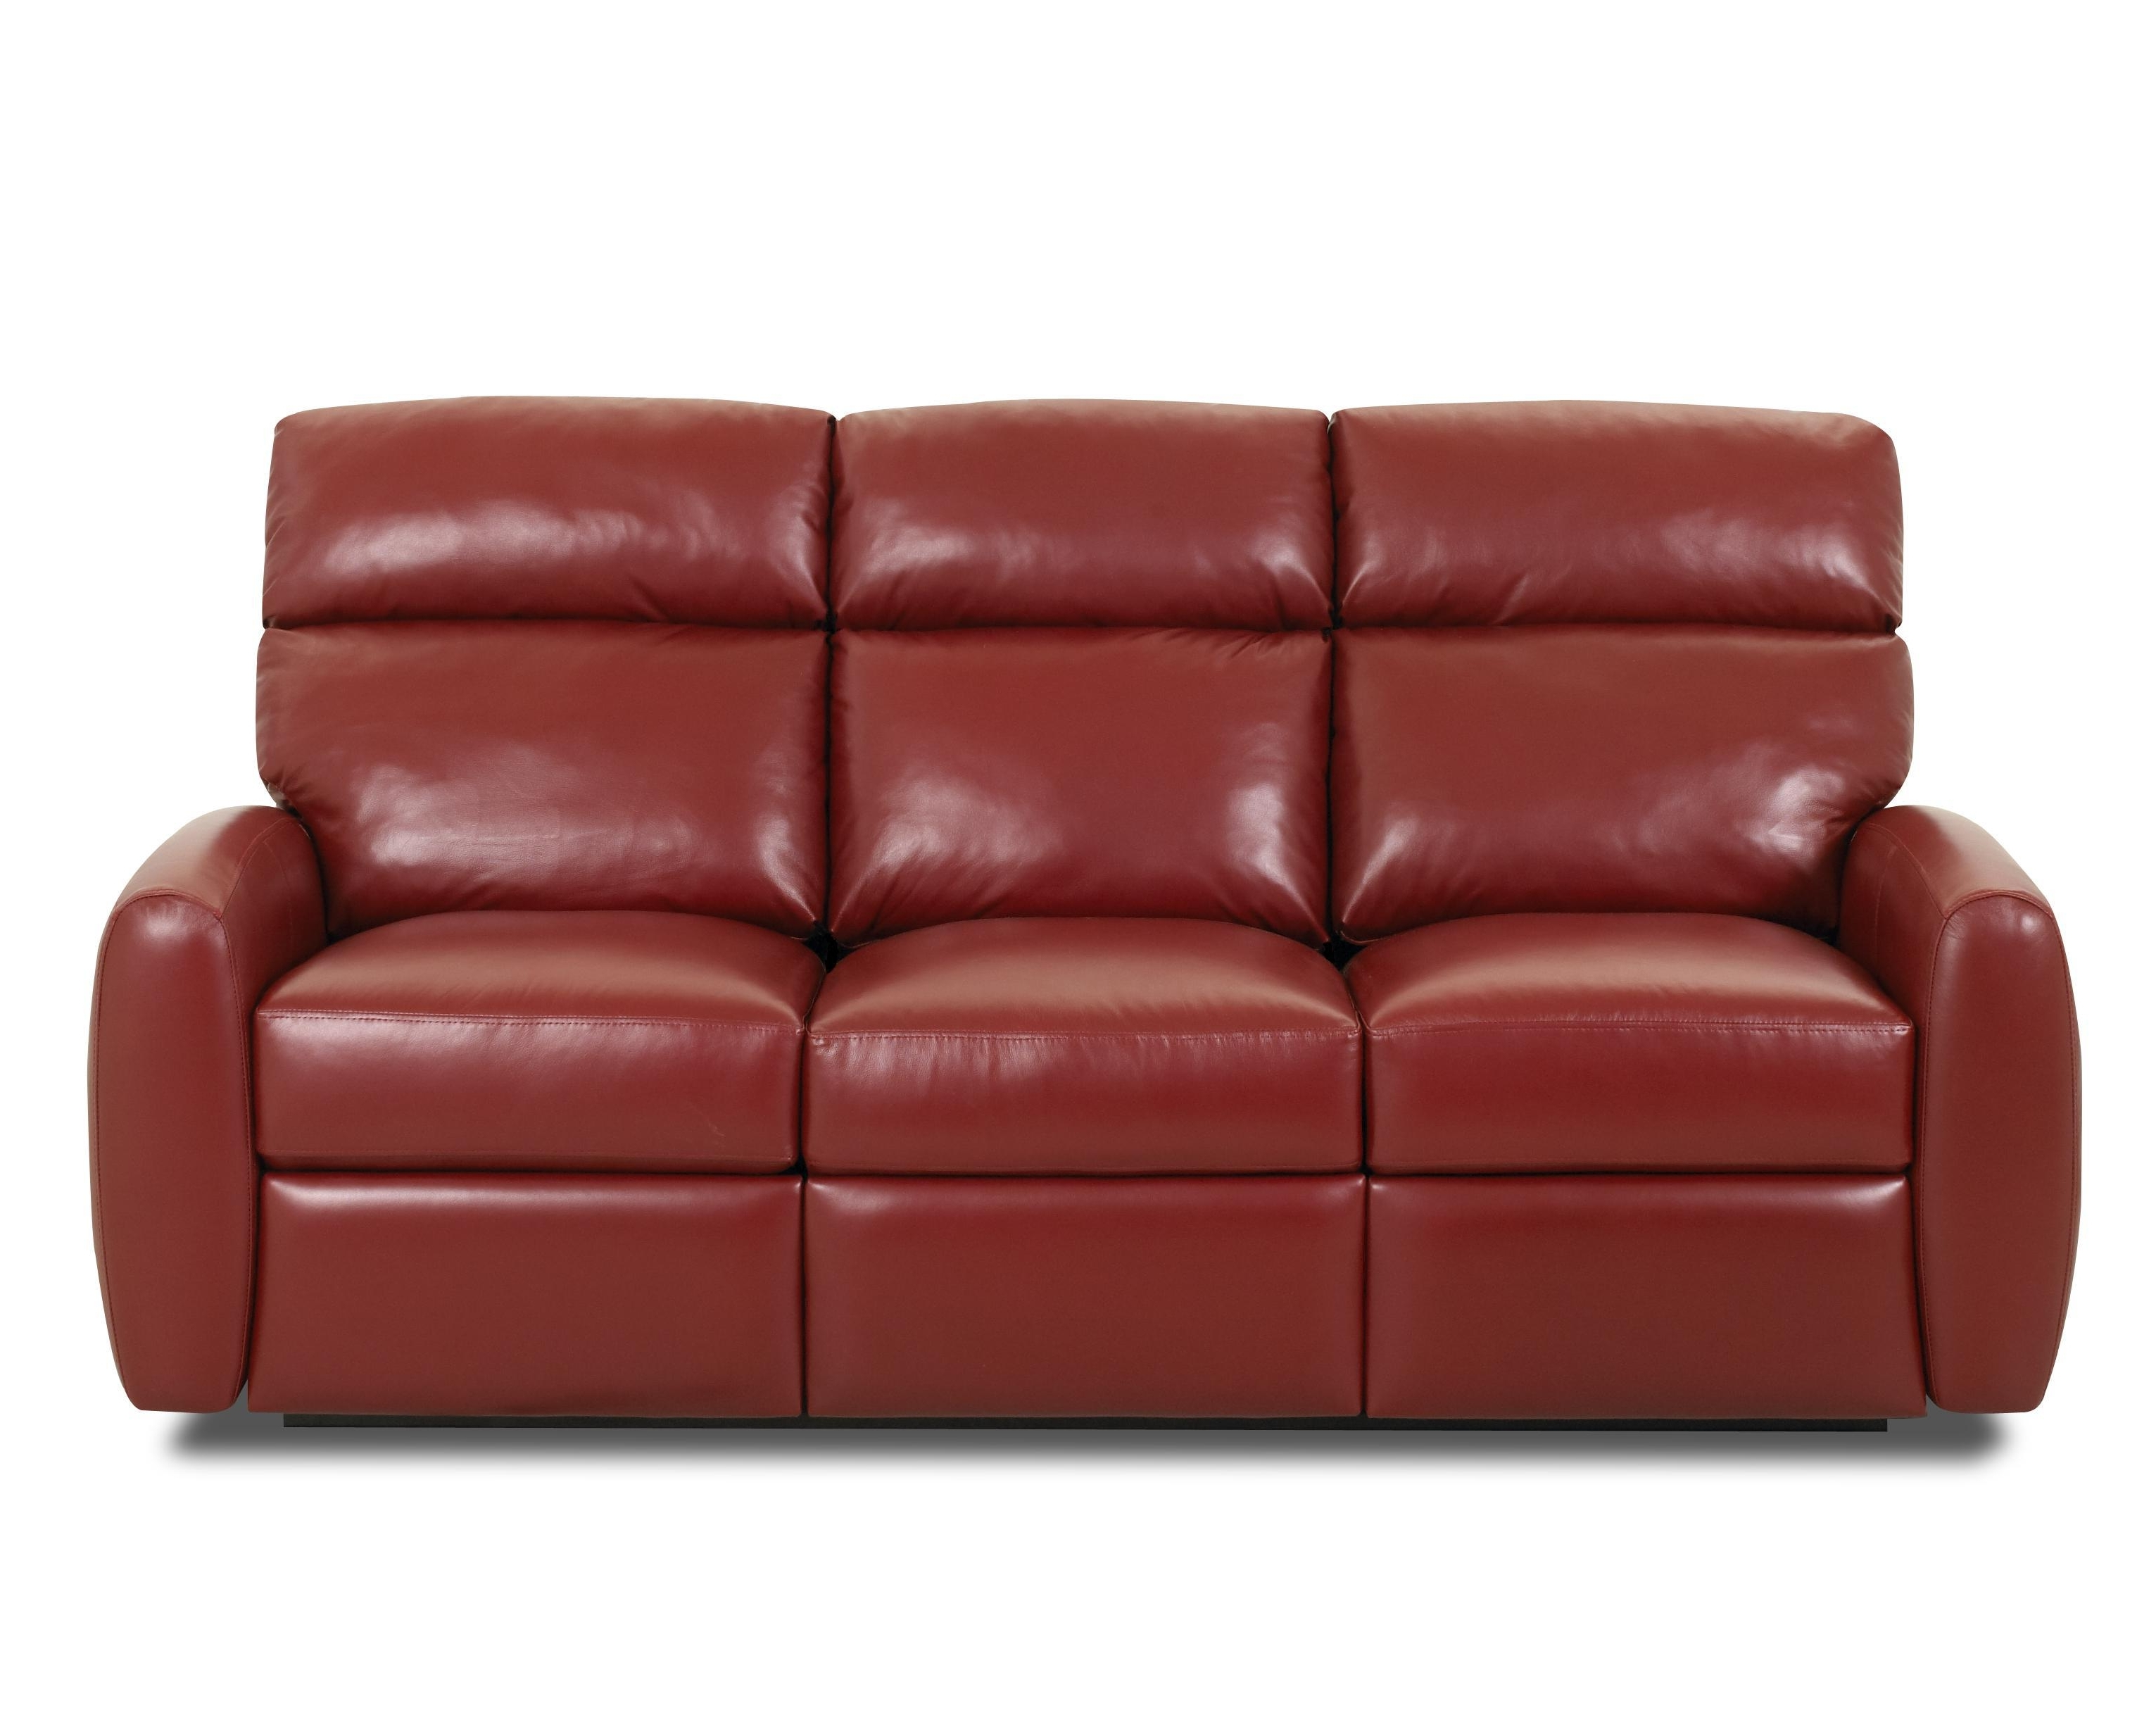 City Creek Throughout Well Known Red Leather Reclining Sofas And Loveseats (View 12 of 20)